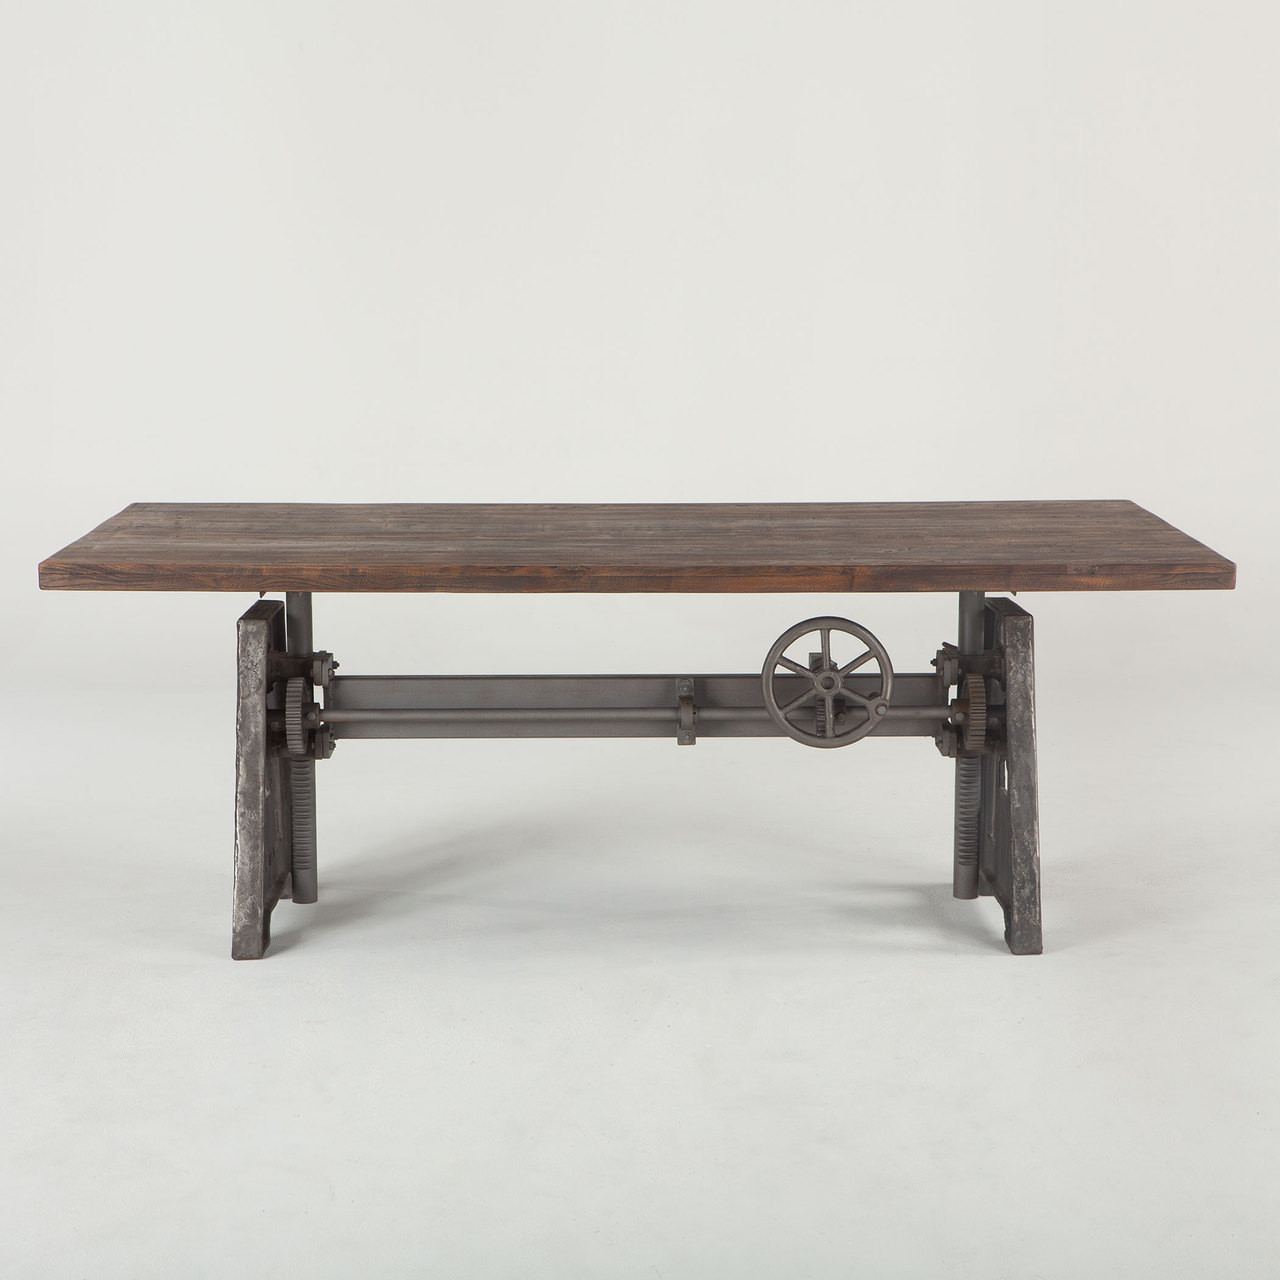 Steampunk Industrial Crank + Wood Top Work Table 84